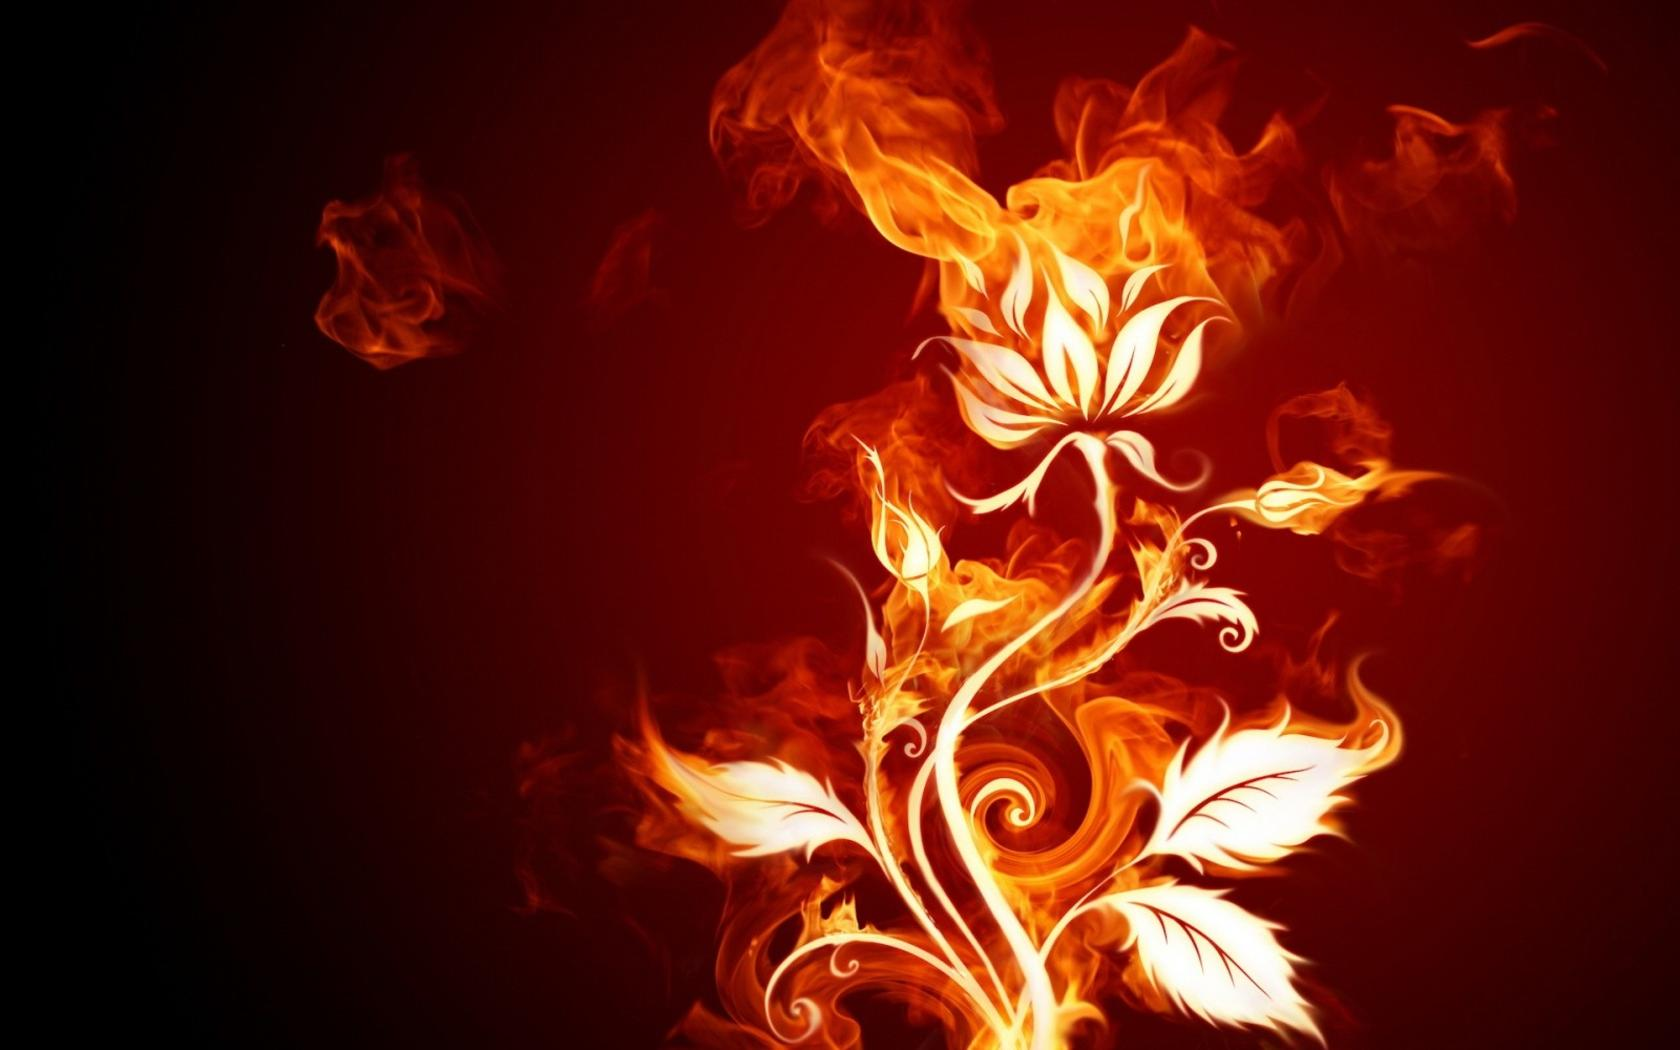 fire wallpaper 9226